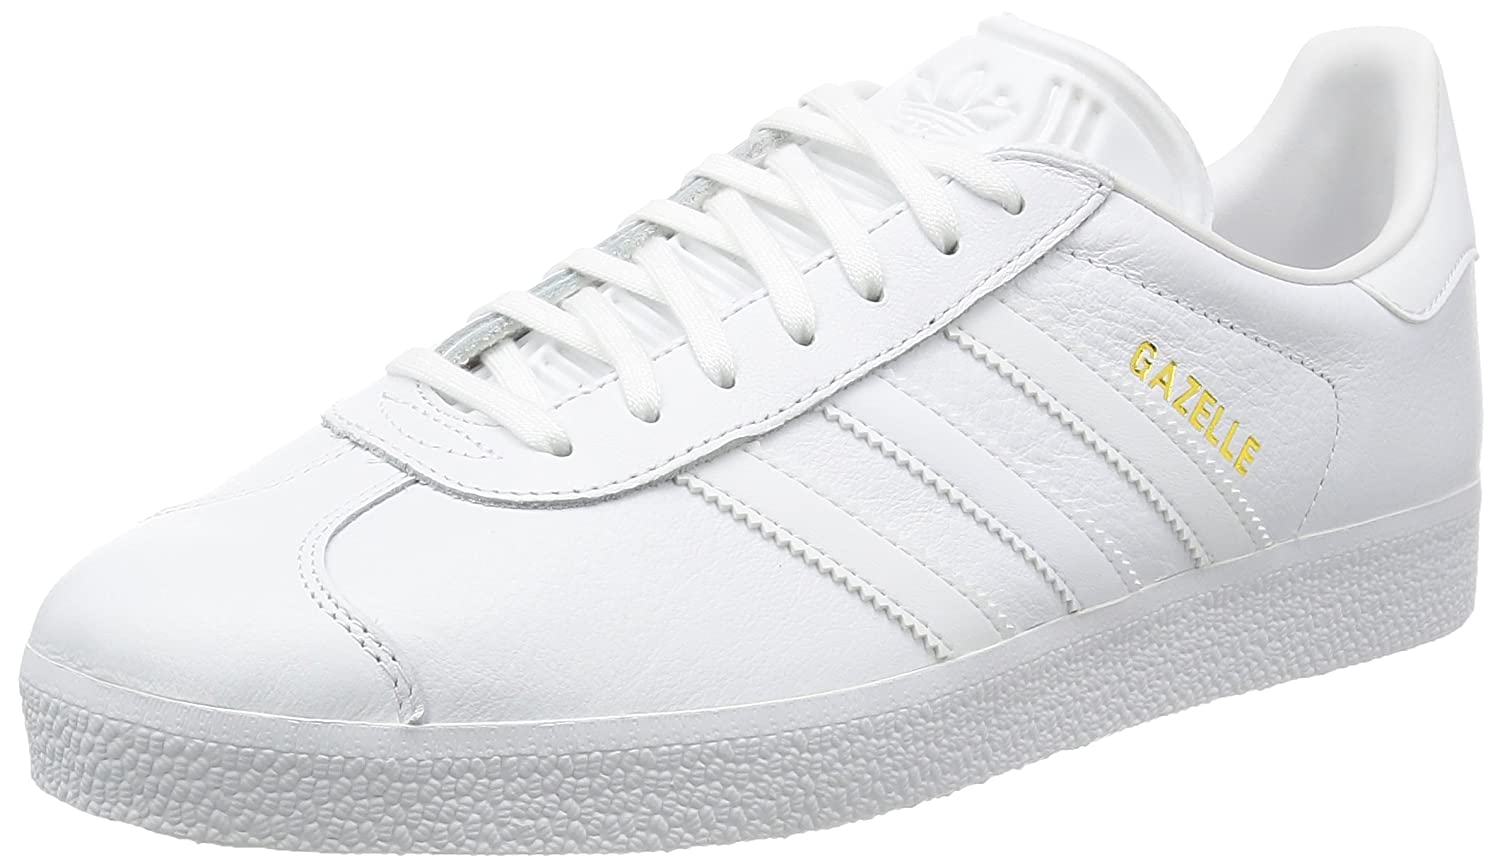 White (White) adidas Unisex Adults' Gazelle Low-Top Sneakers